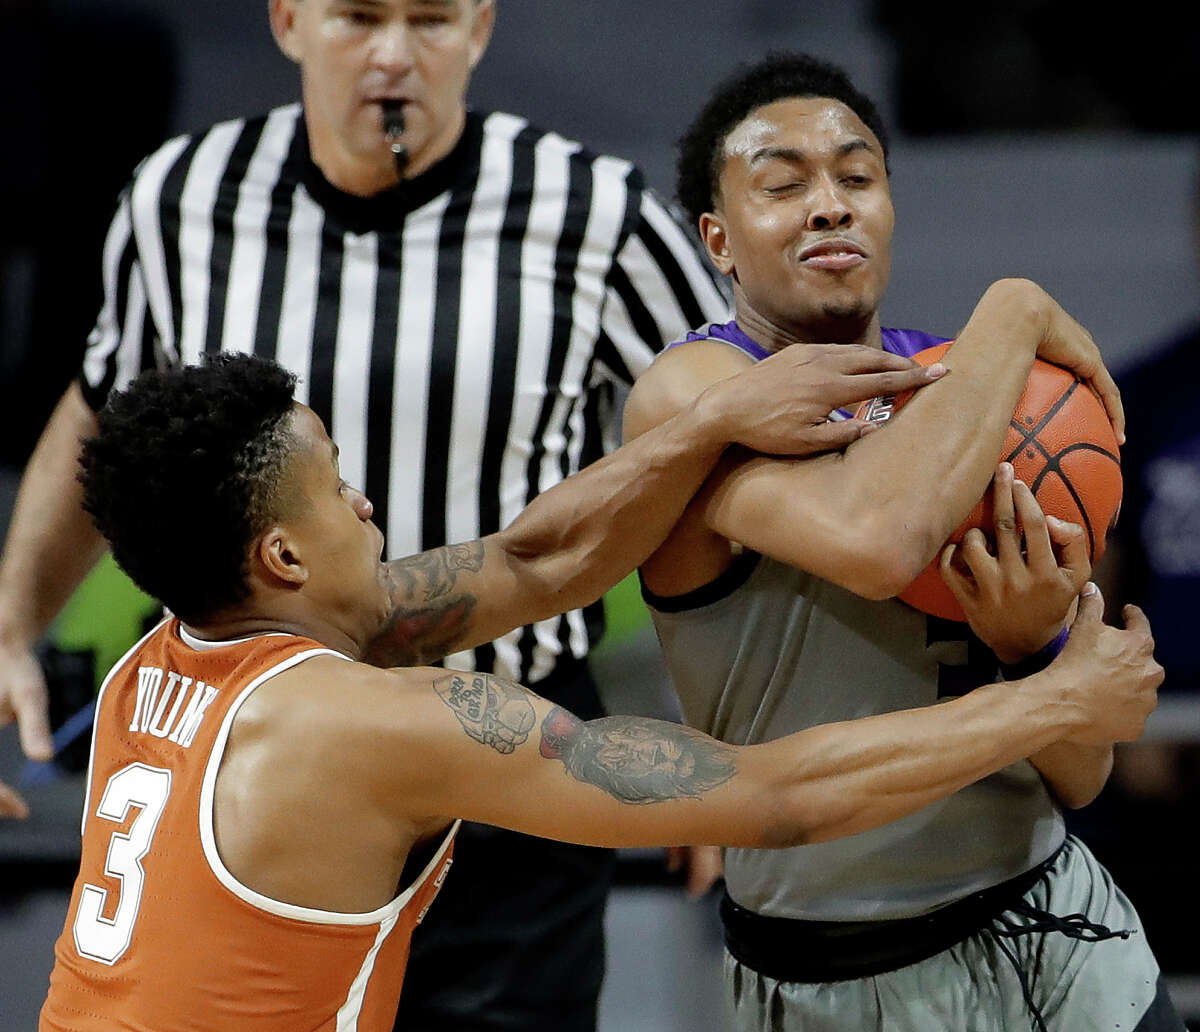 Texas' Jacob Young (3) tries to steal the ball from Kansas State's Kamau Stokes during the second half of an NCAA college basketball game Friday, Dec. 30, 2016, in Manhattan, Kan. Kansas State won 65-62. (AP Photo/Charlie Riedel)